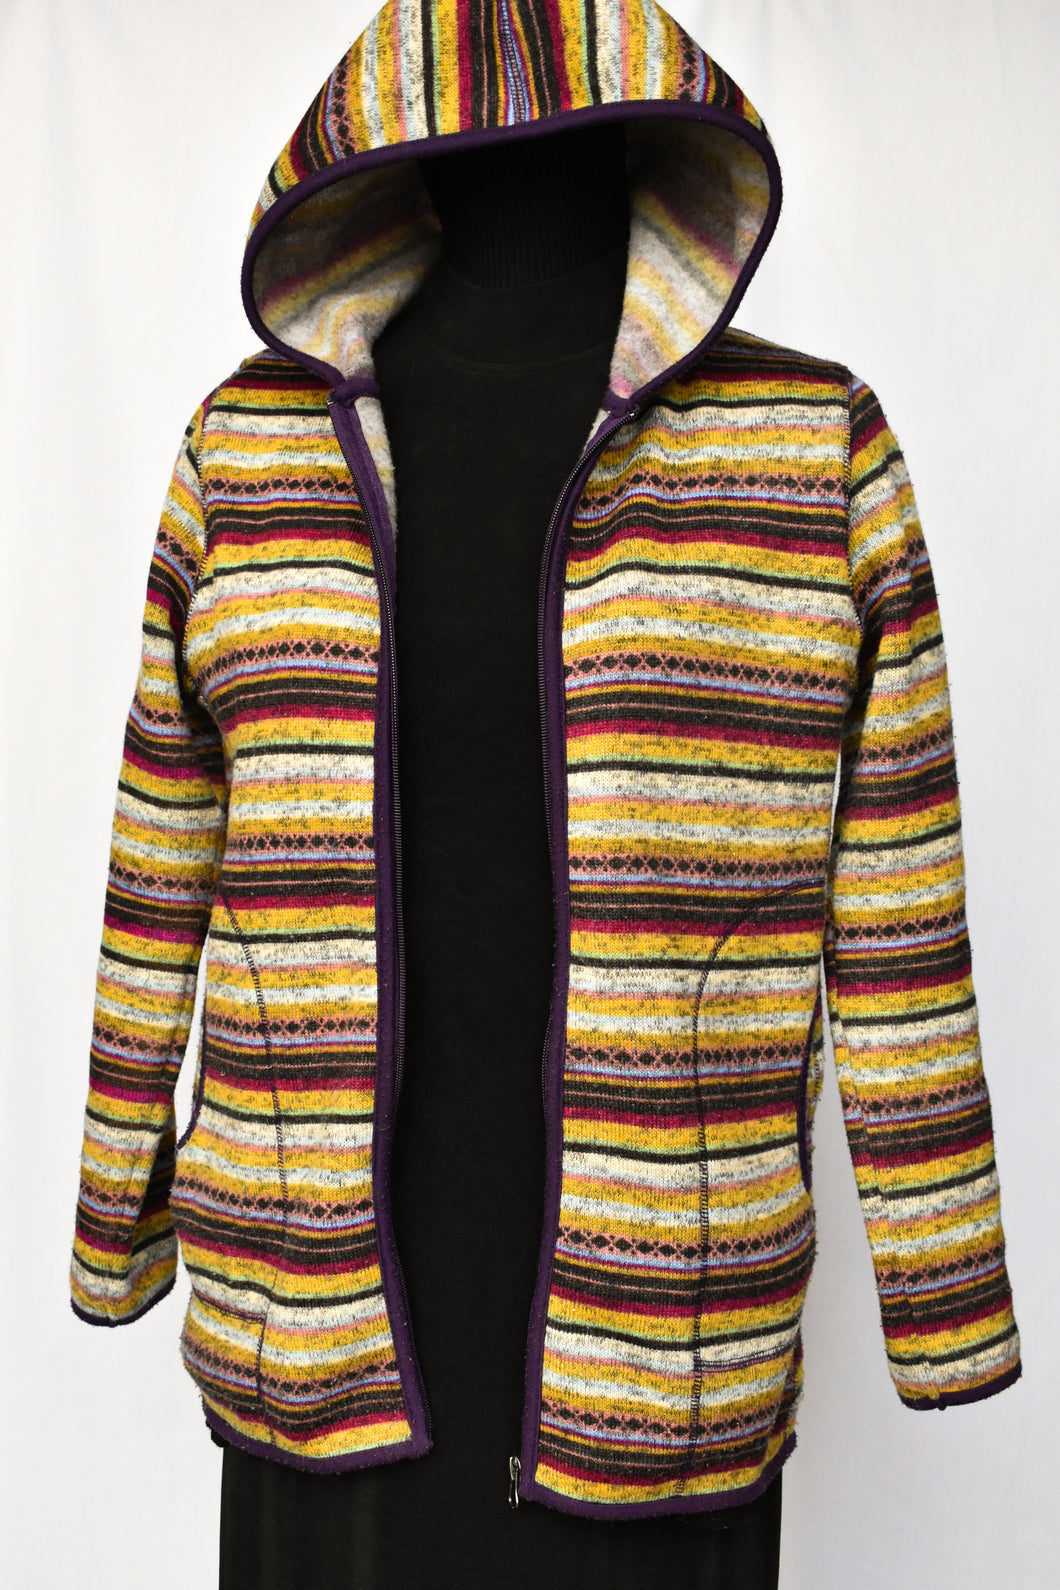 Multi coloured striped hoody, size M